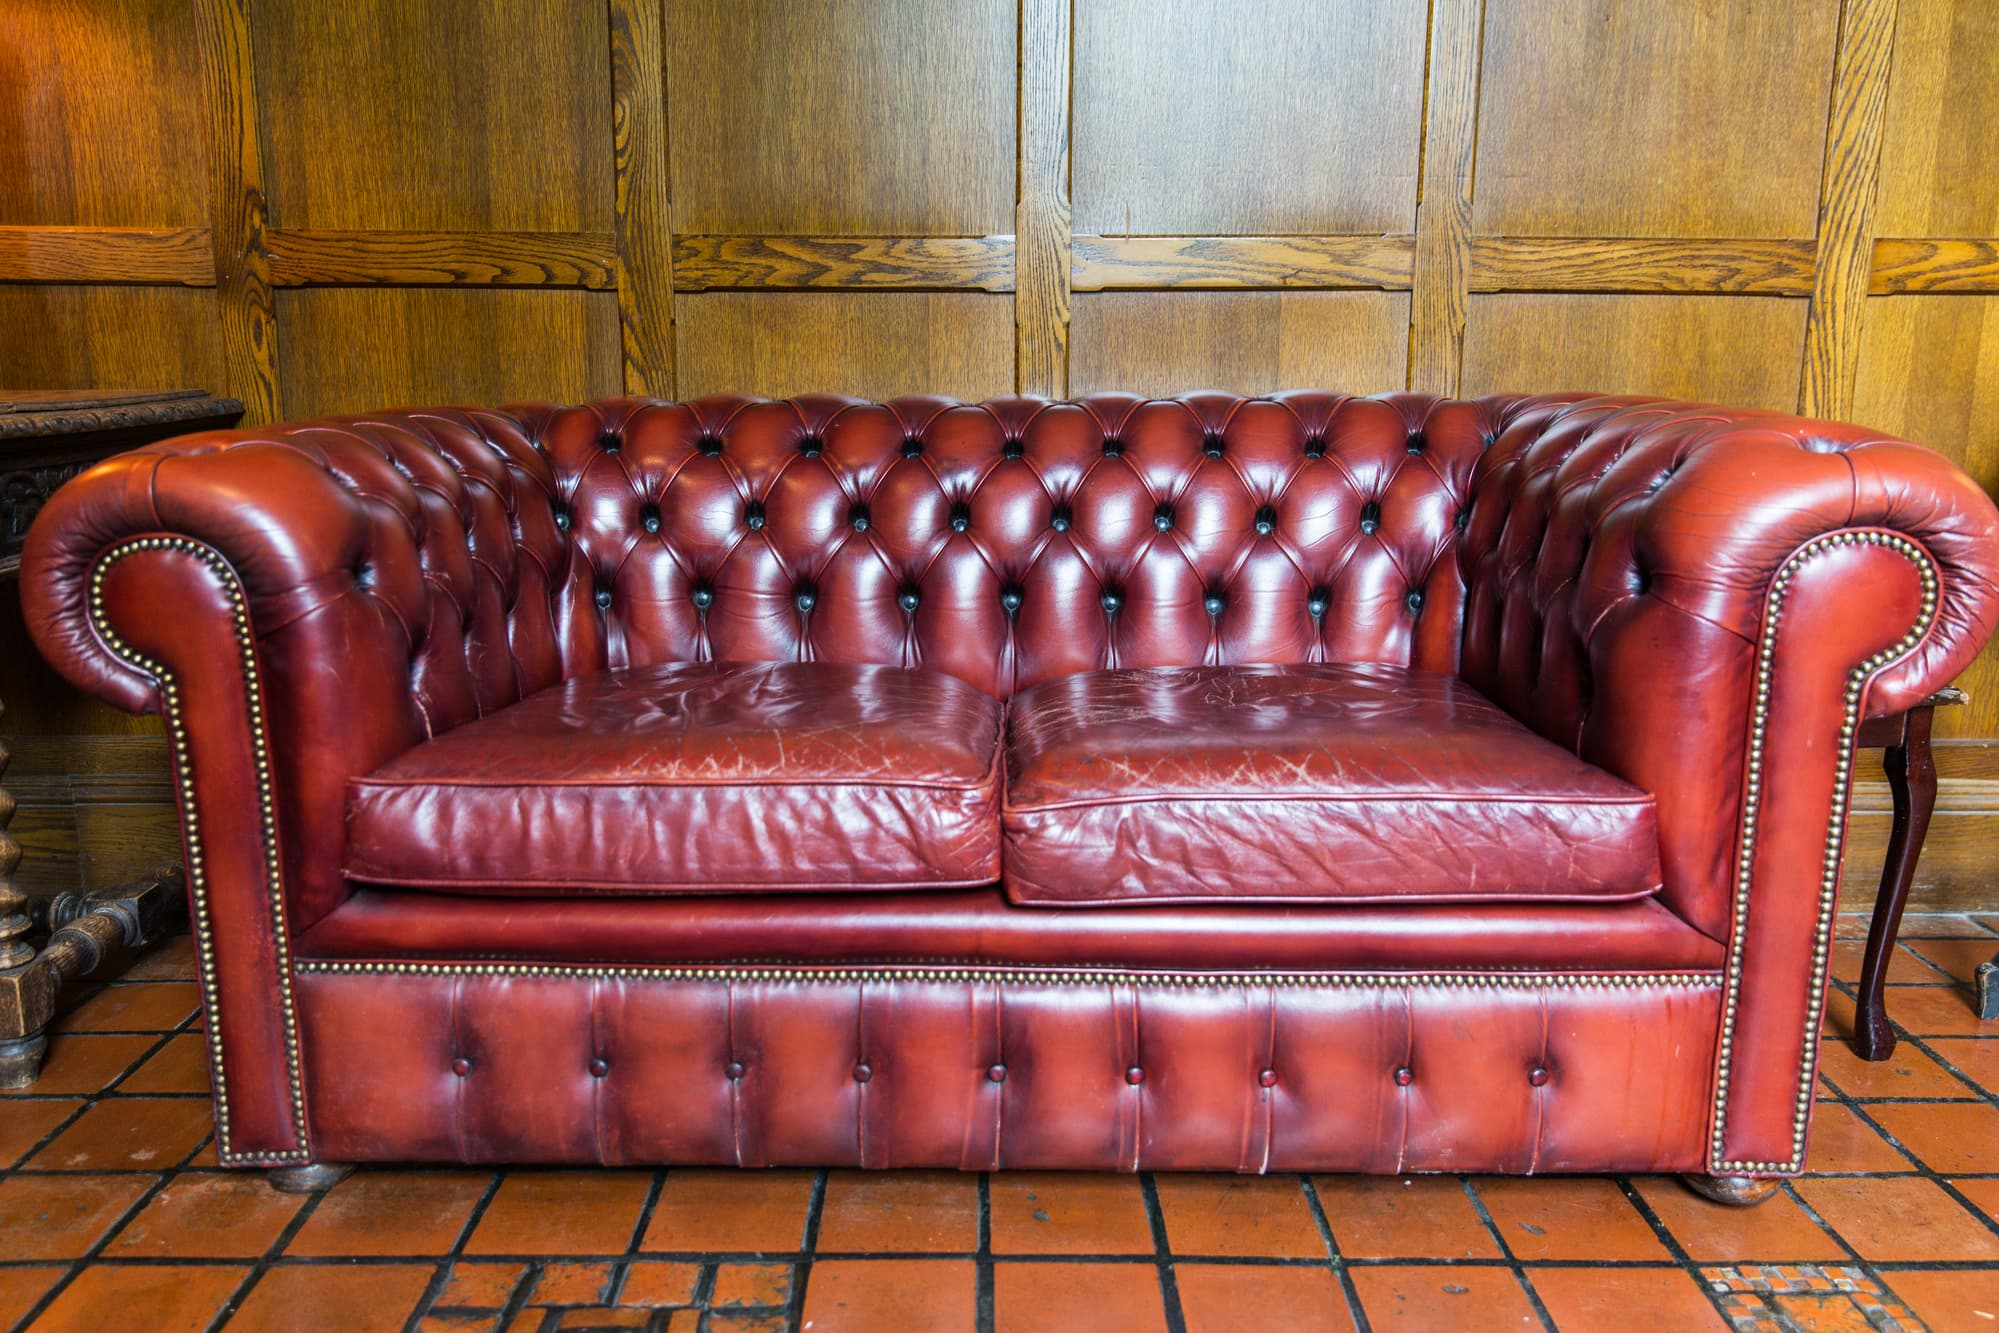 red leather couch that need restoration